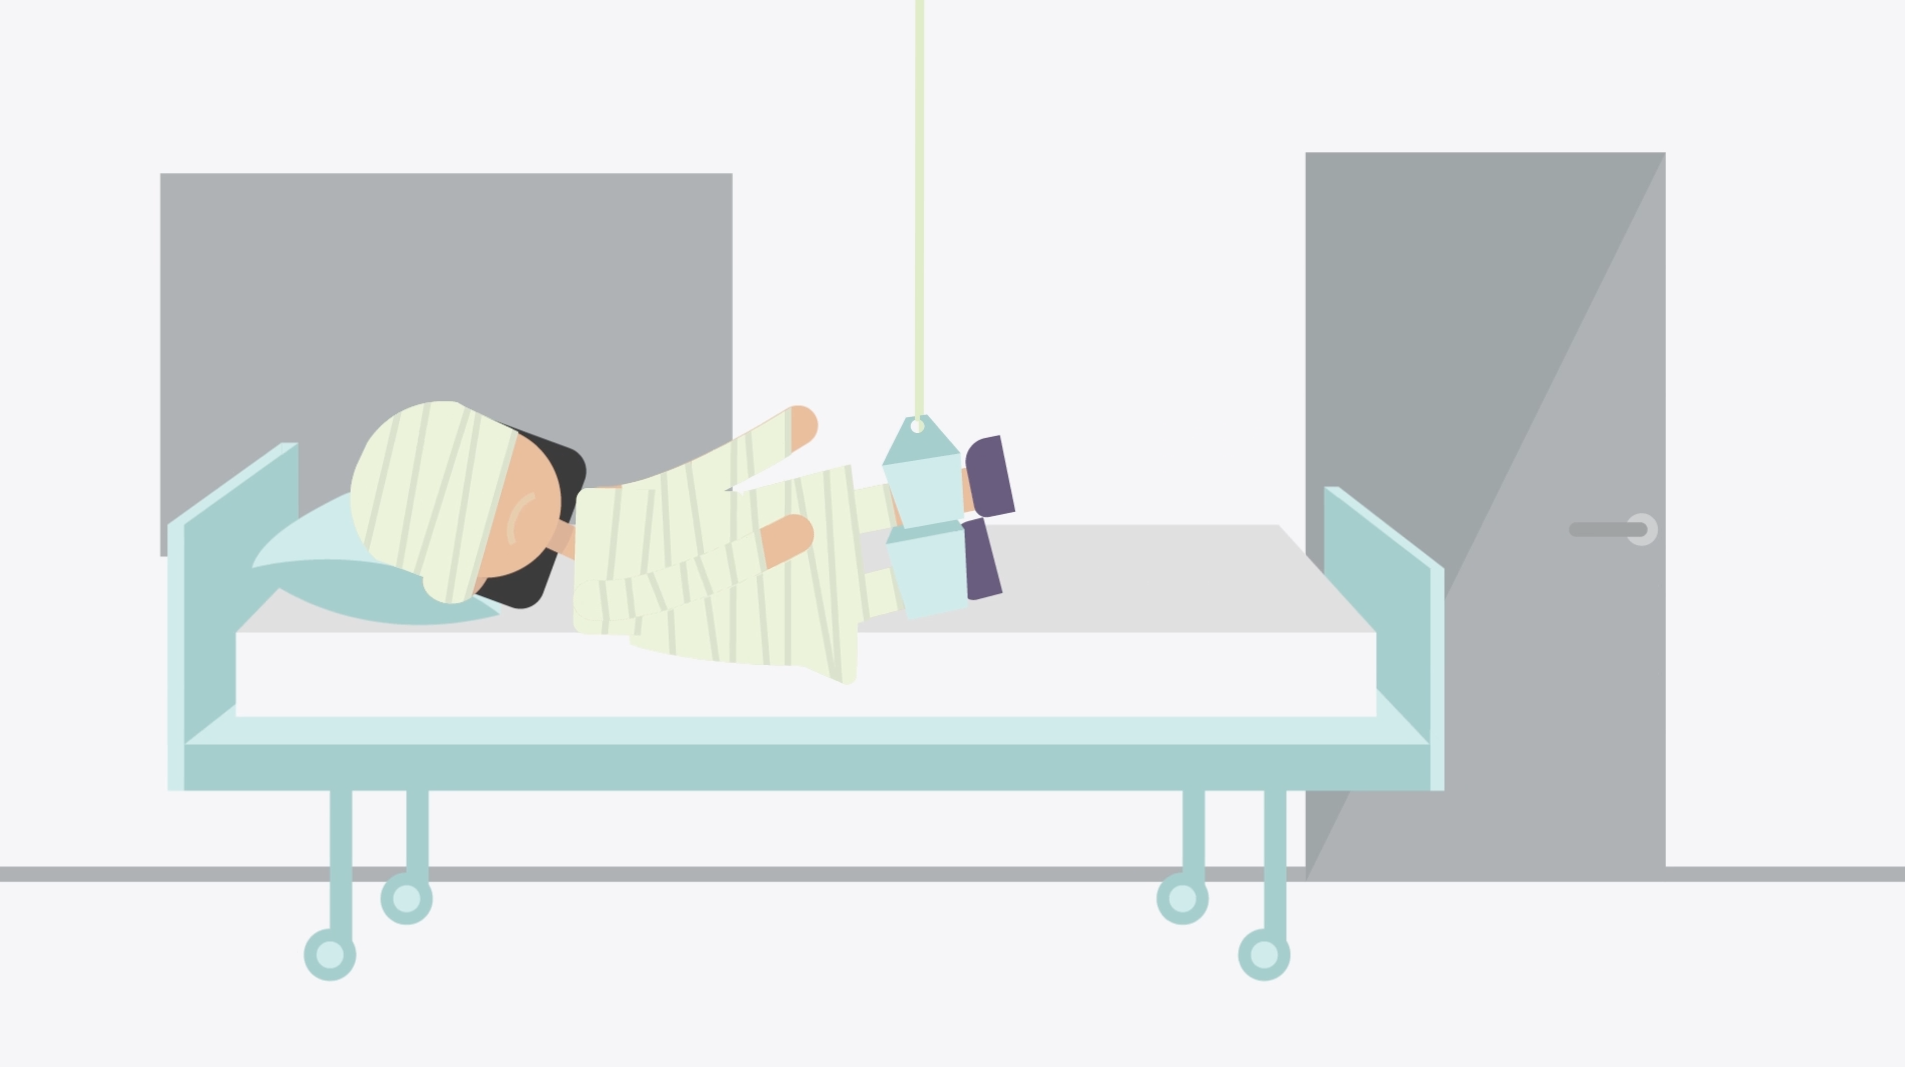 This is an animated video explaining a monthly premium to cover healthcare needs.